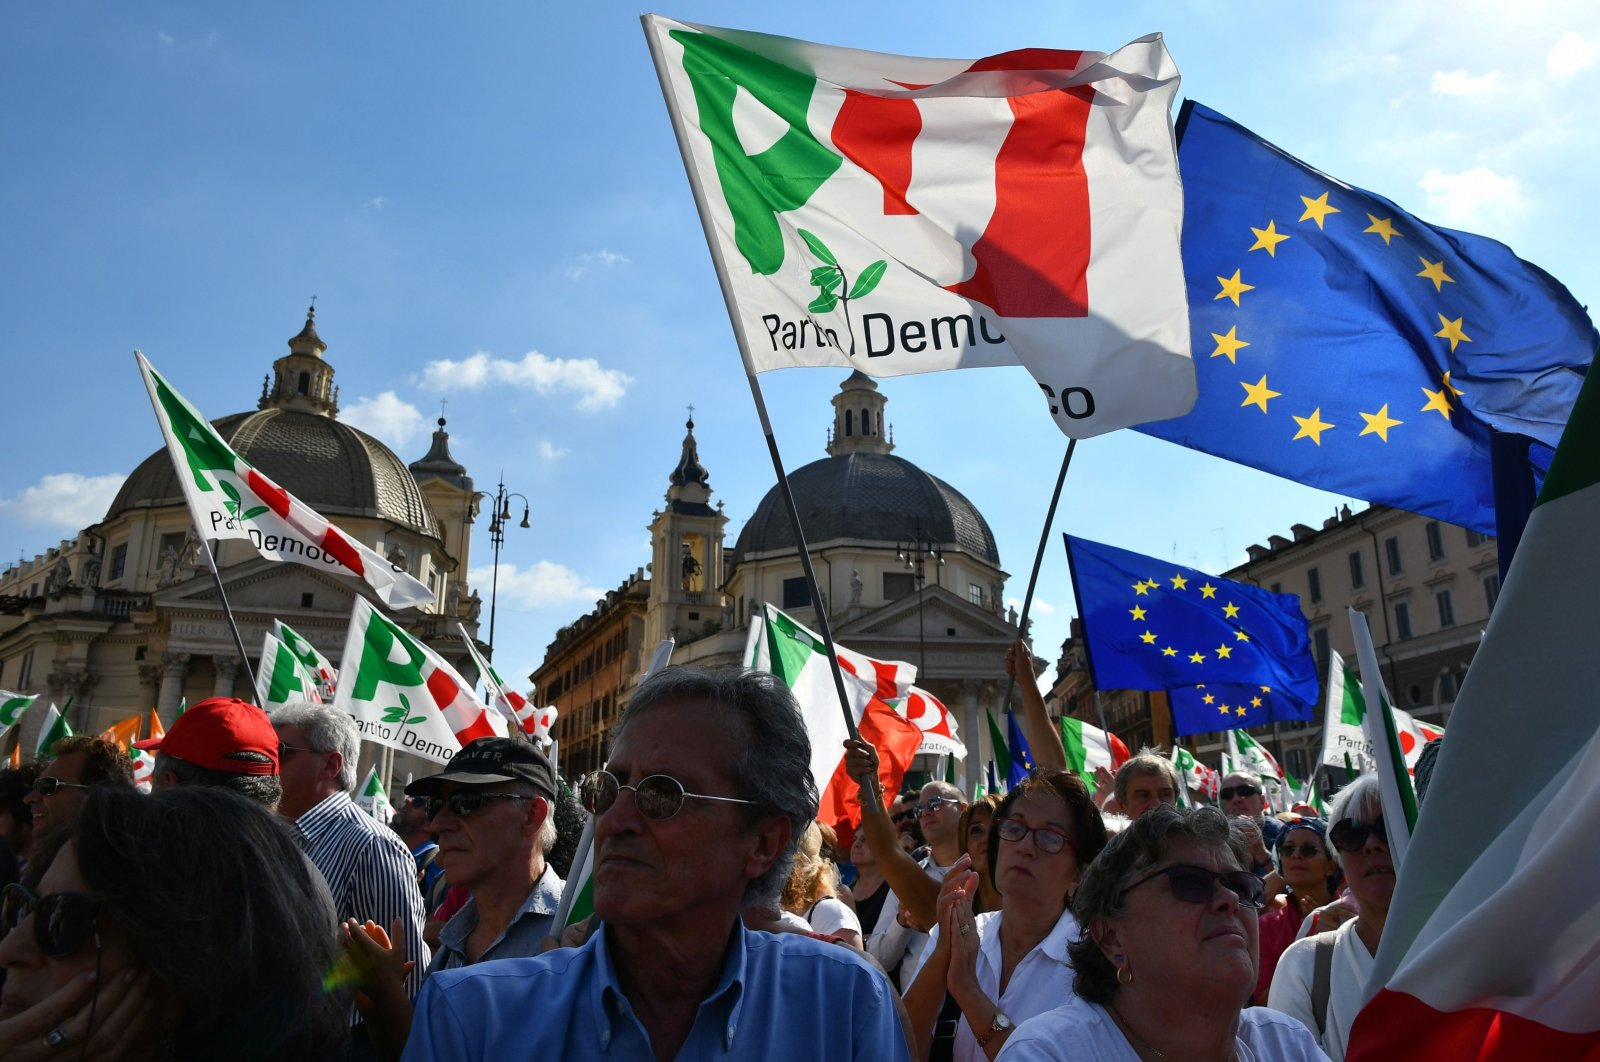 Supporters of Italy's center-left Democratic Party (PD) wave flags, Rome, Italy, Sept. 30, 2018. (AFP Photo)